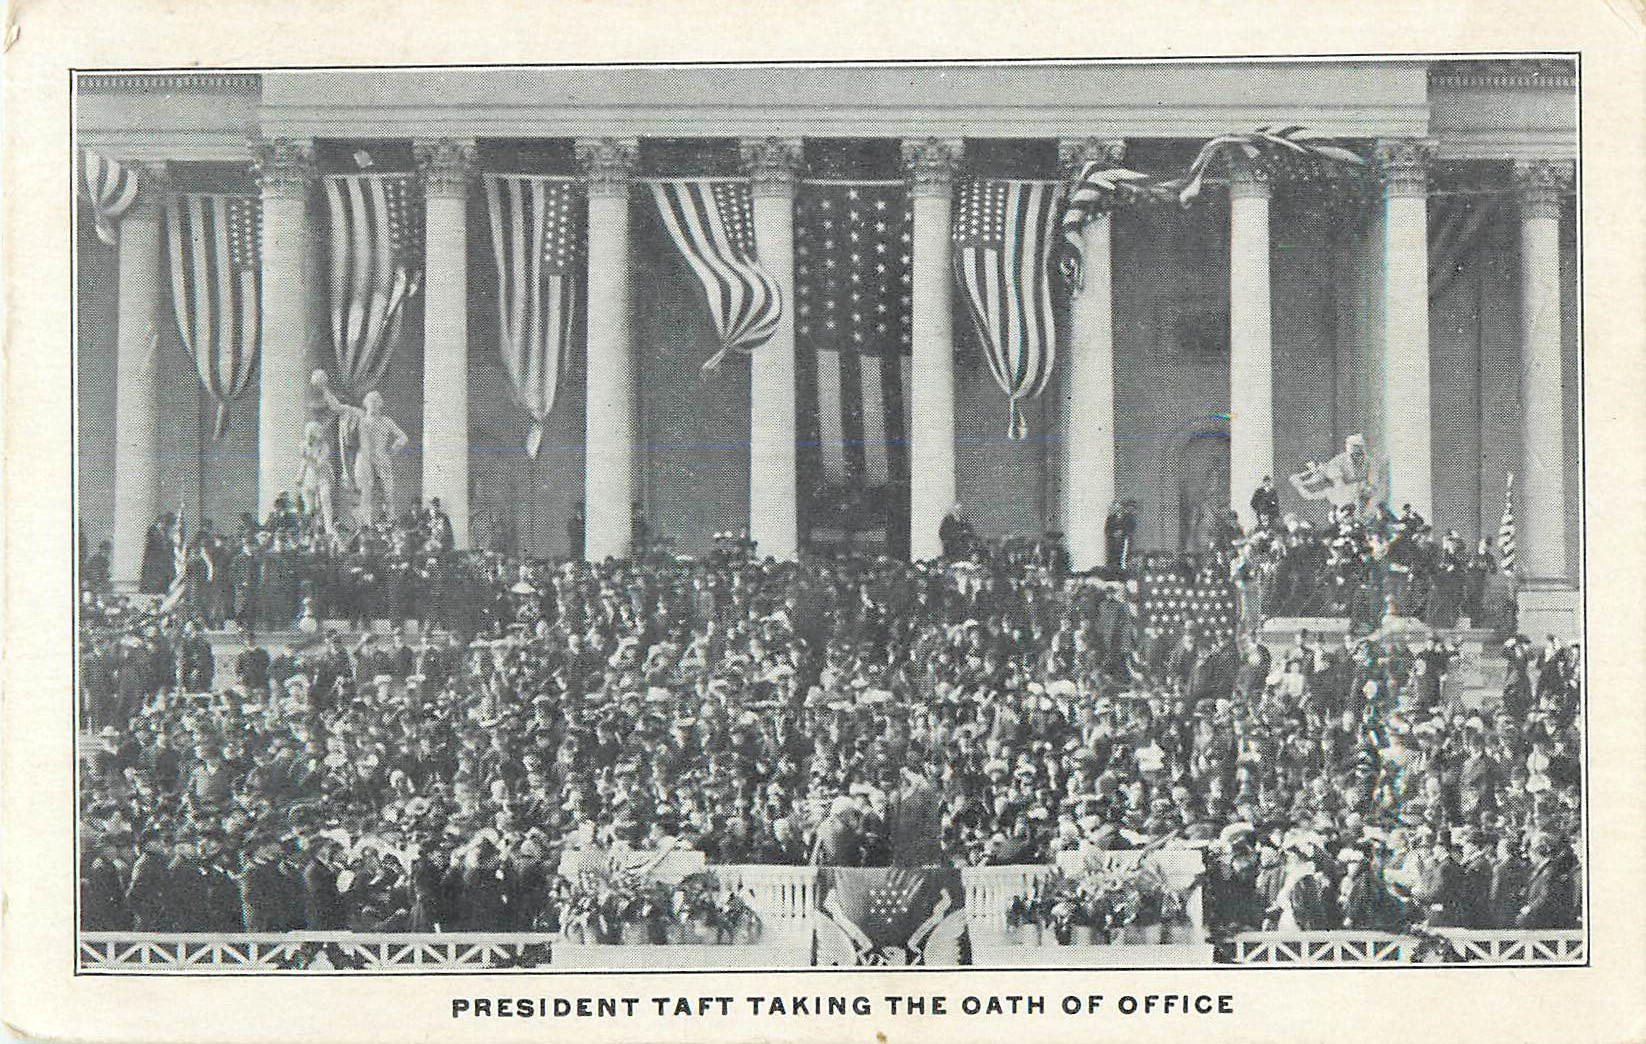 President Taft Taking the Oath of Office